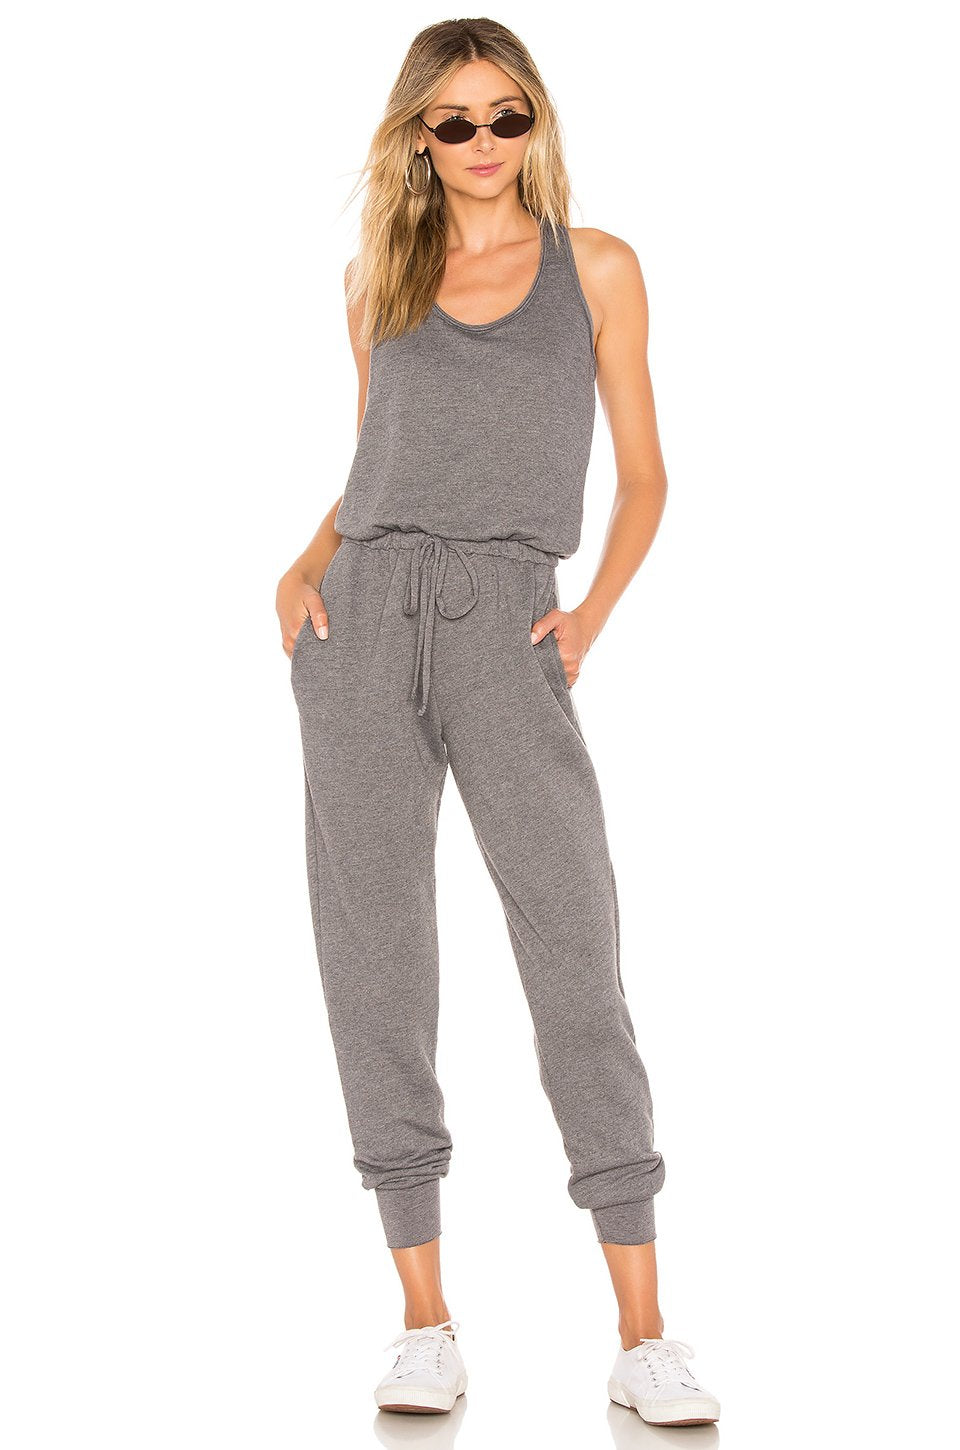 Eberhart Jumpsuit in Solid Charcoal